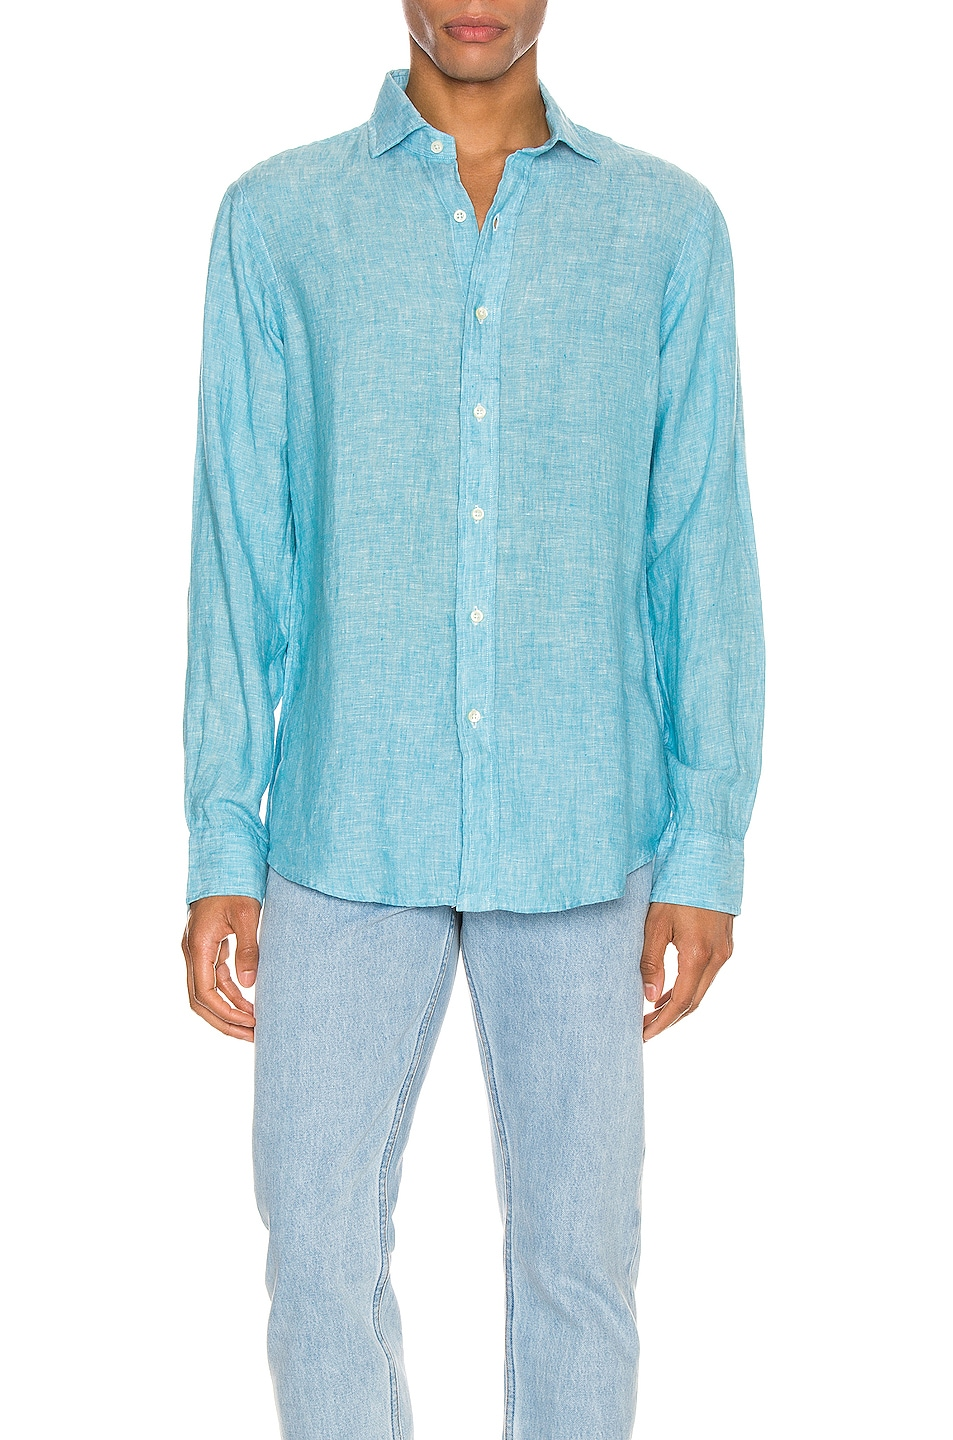 Image 1 of Polo Ralph Lauren Linen Chambray Long Sleeve Button Up Shirt in 4366F Turquoise